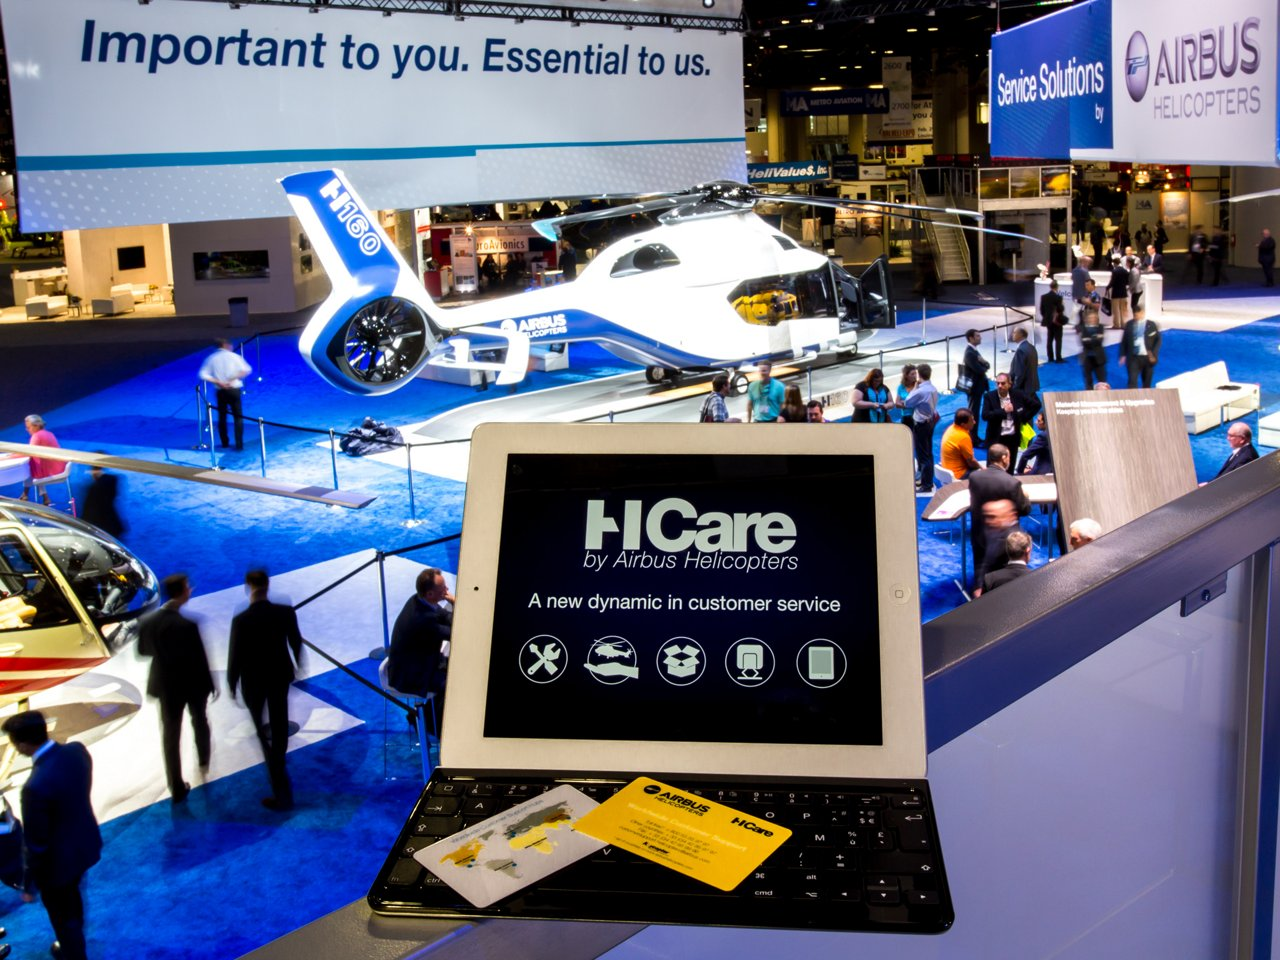 Airbus Helicopters' HCare brings a new dynamic in customer service, with comprehensive coverage, quality and performance